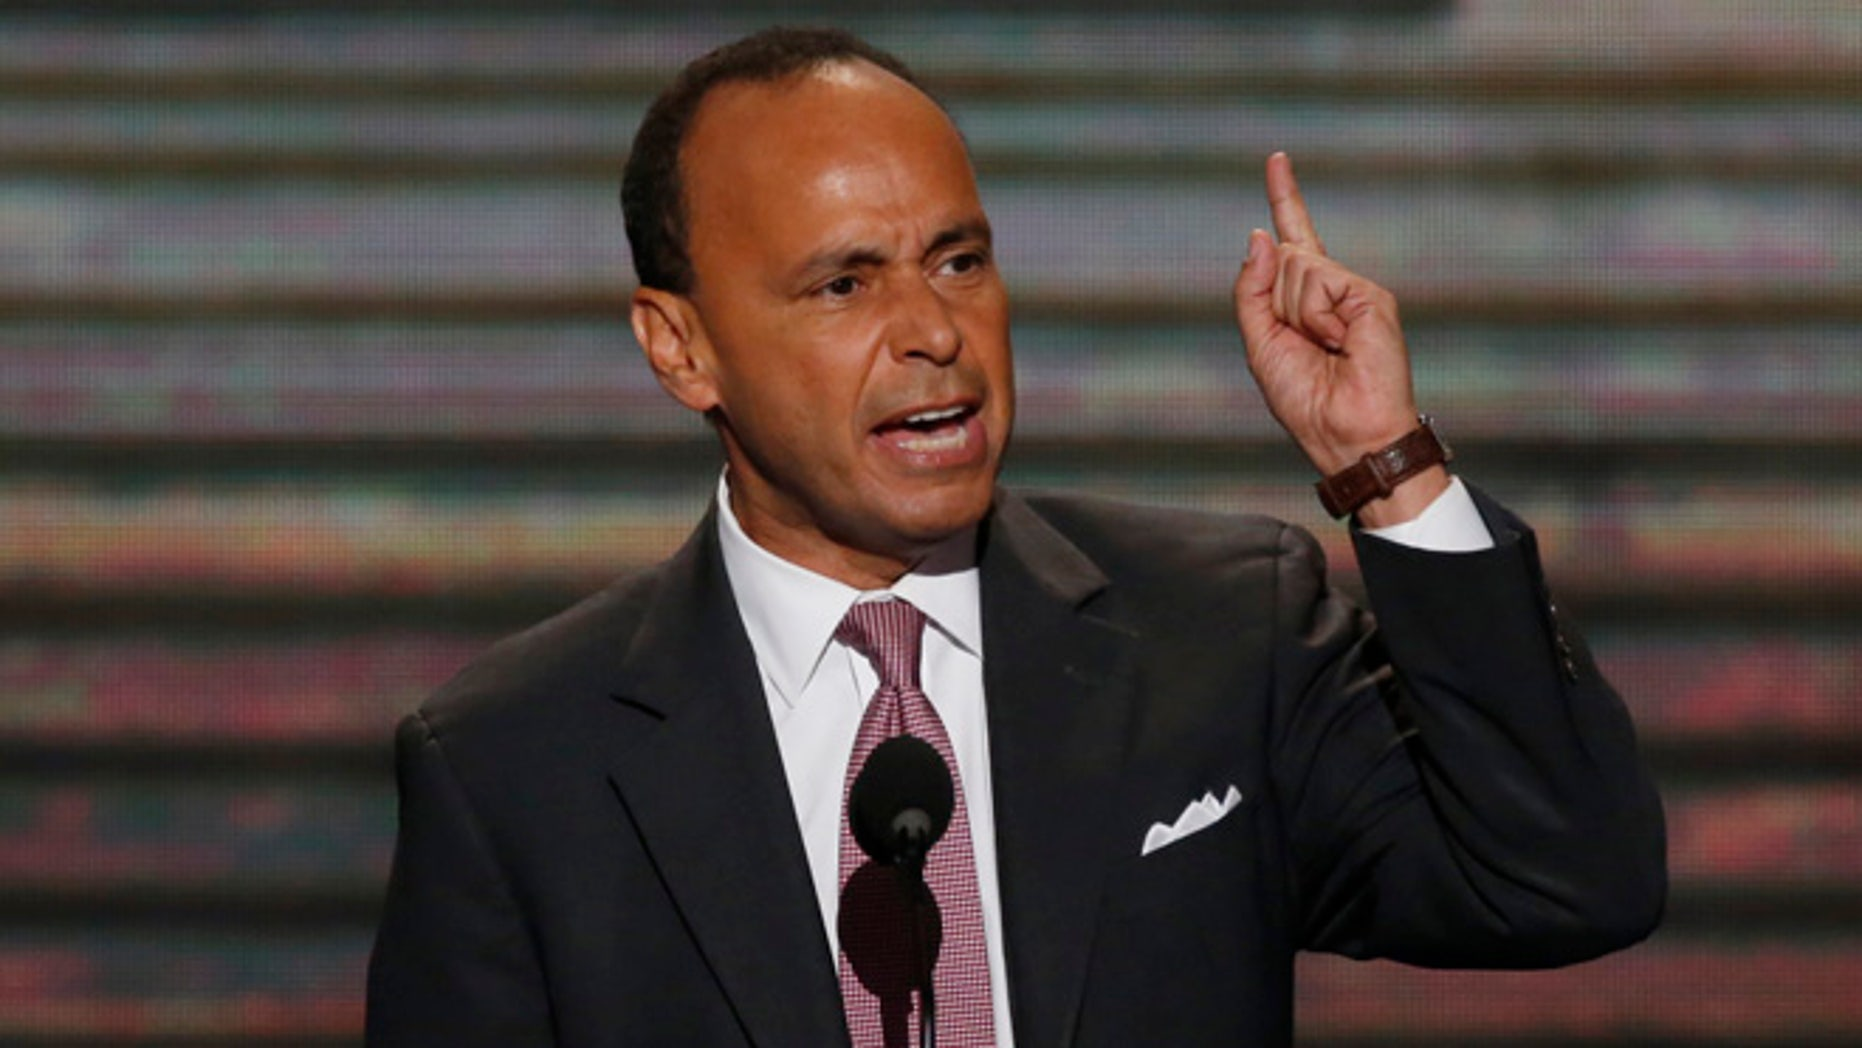 U.S. Rep. Luis Gutierrez (D-IL) addresses delegates during the second session of the Democratic National Convention in Charlotte, North Carolina, September 5, 2012.   REUTERS/Jason Reed (UNITED STATES  - Tags: POLITICS ELECTIONS)   - RTR37J8M